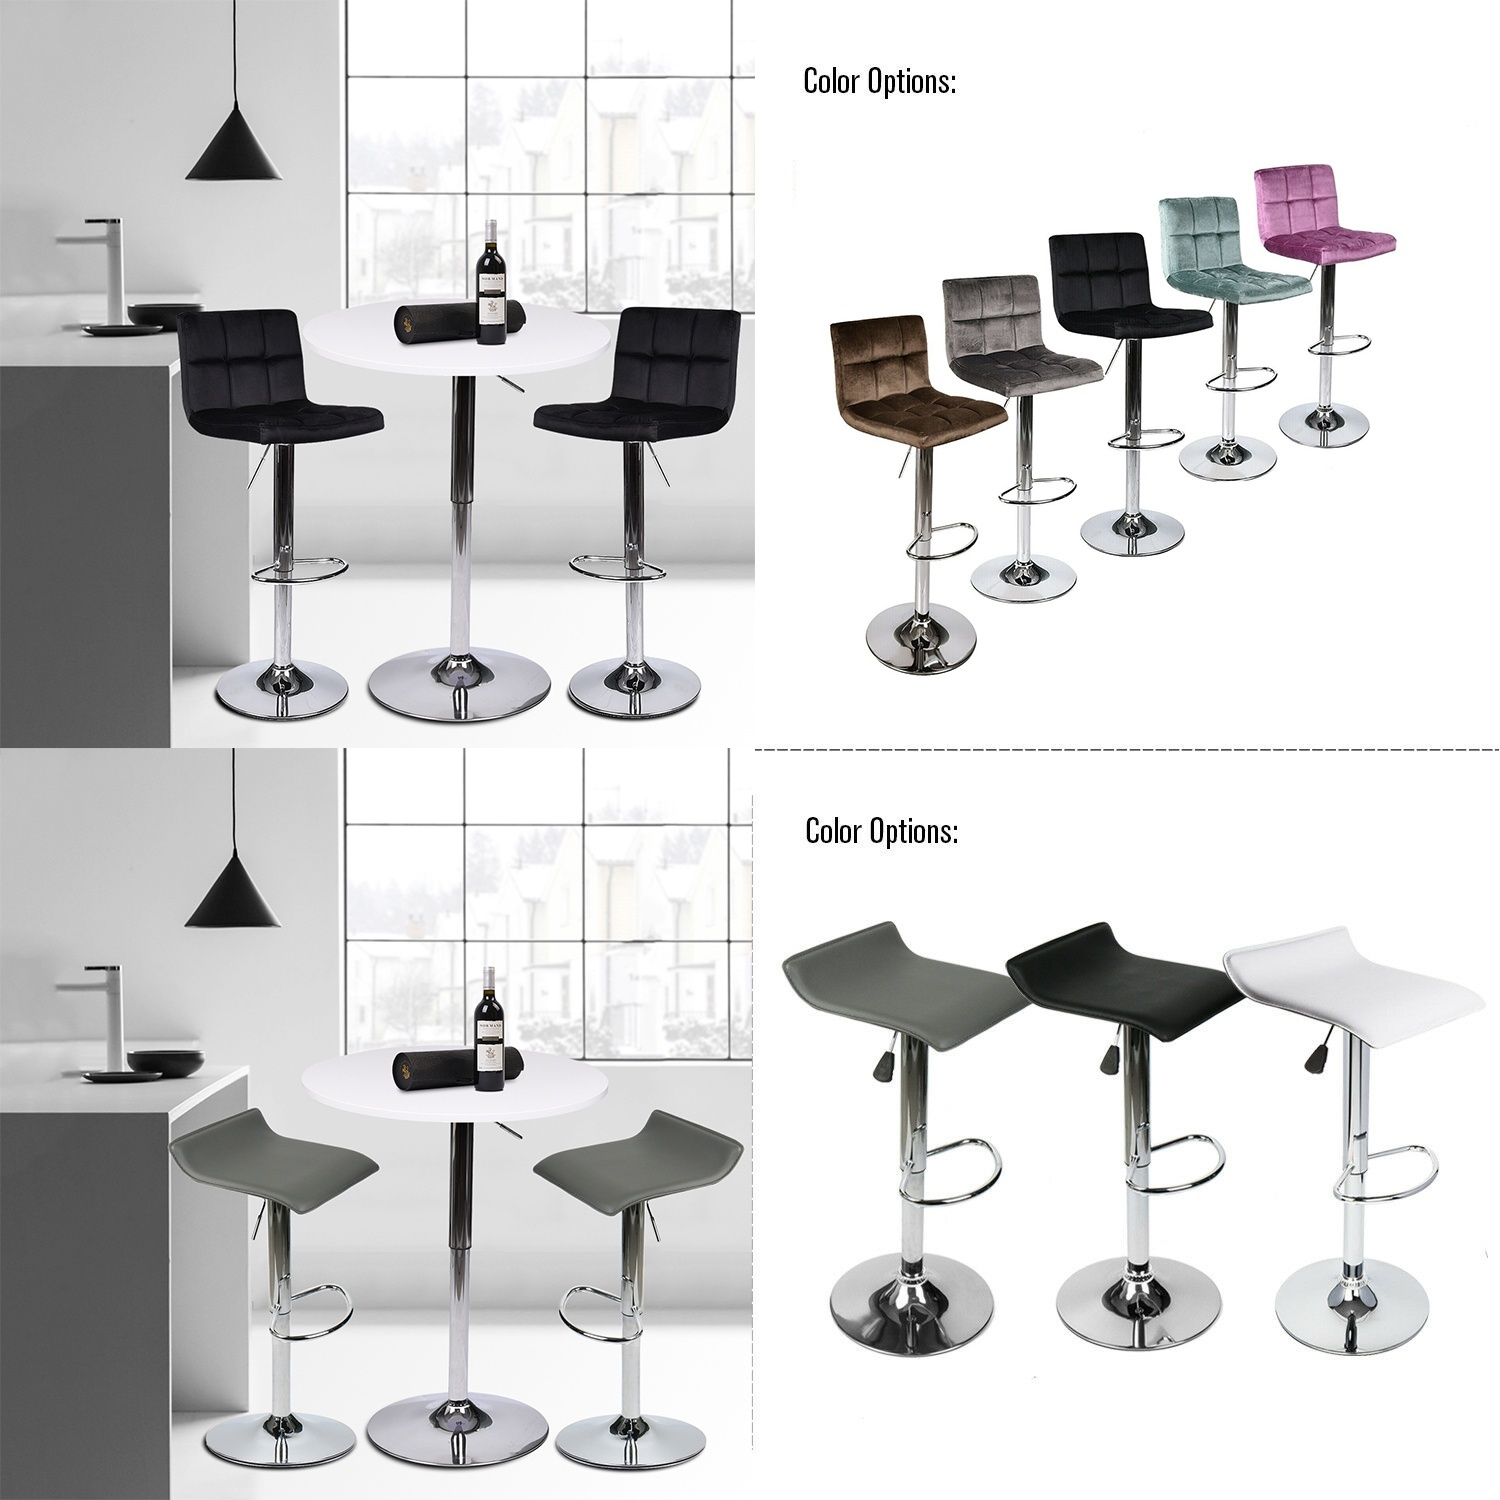 3-Piece Set Bar Stools Table Leather Cushion Chair Adjustable Swivel Counter Pub